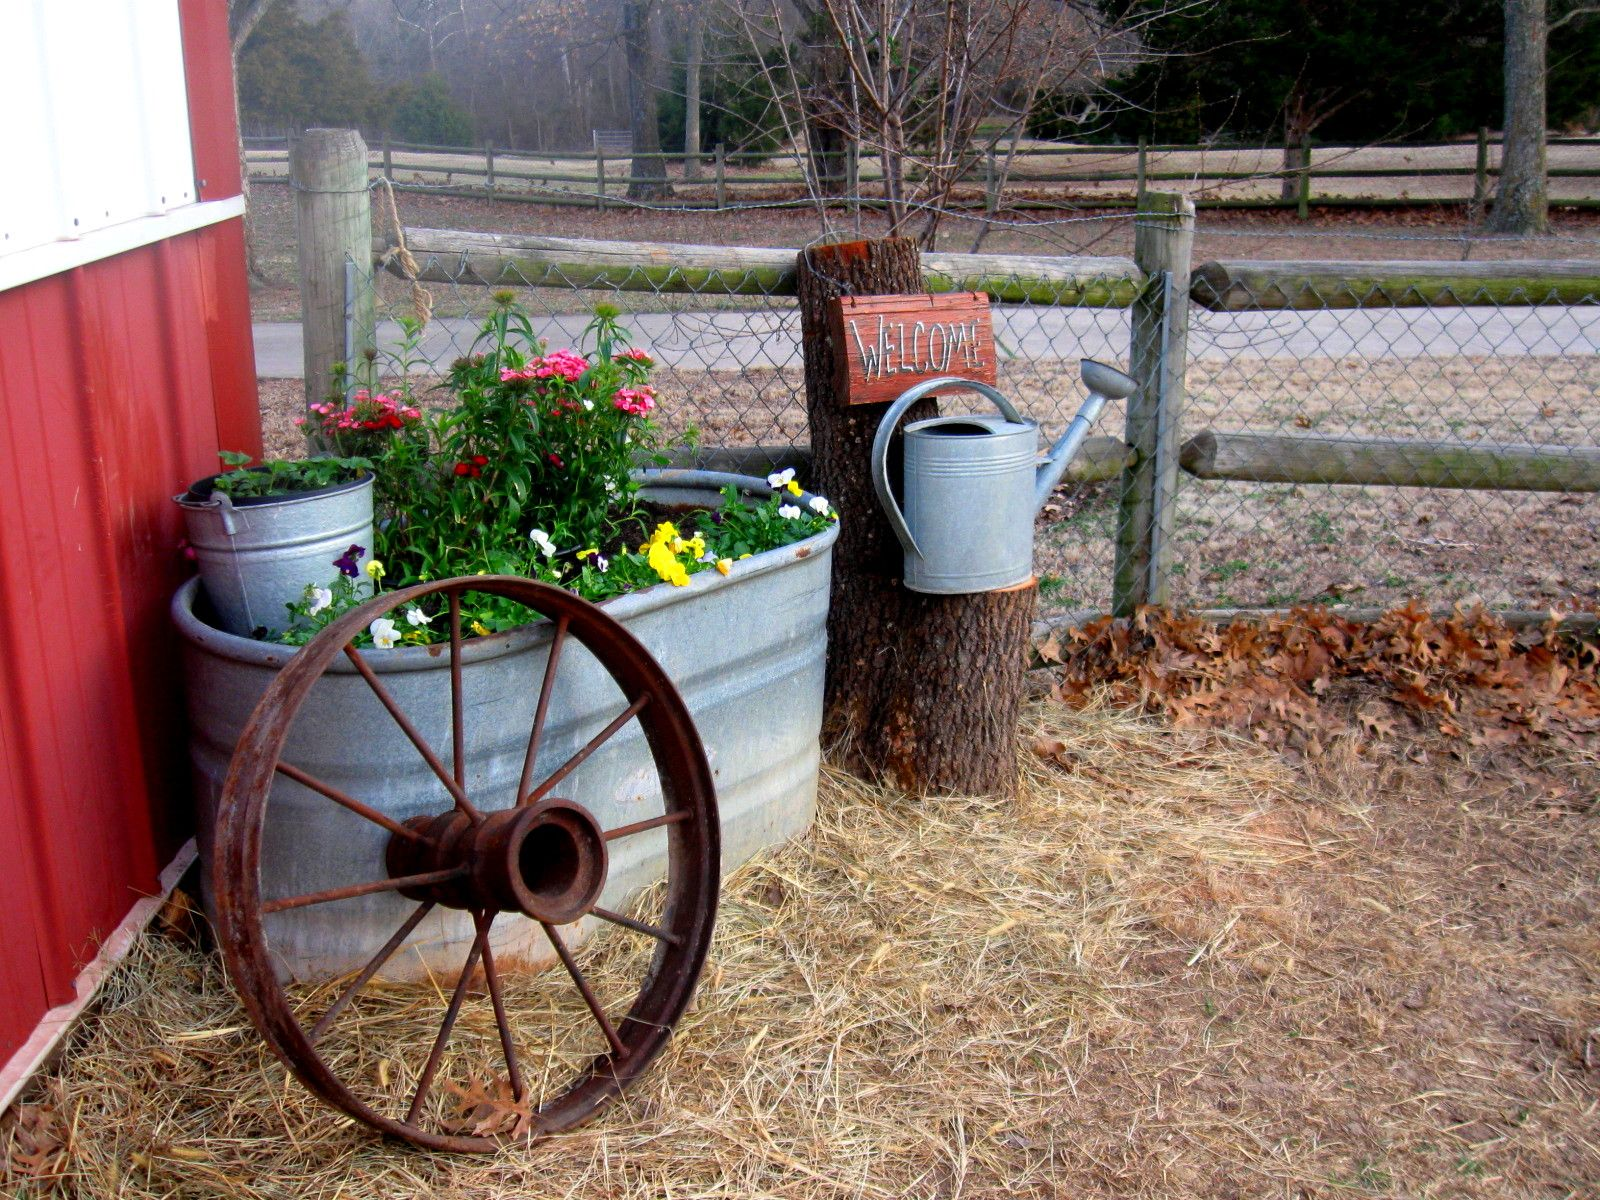 Rusted Wagon Wheel In Barnyard Corner Vignette Garden Yard Ideas Lawn And Backyard